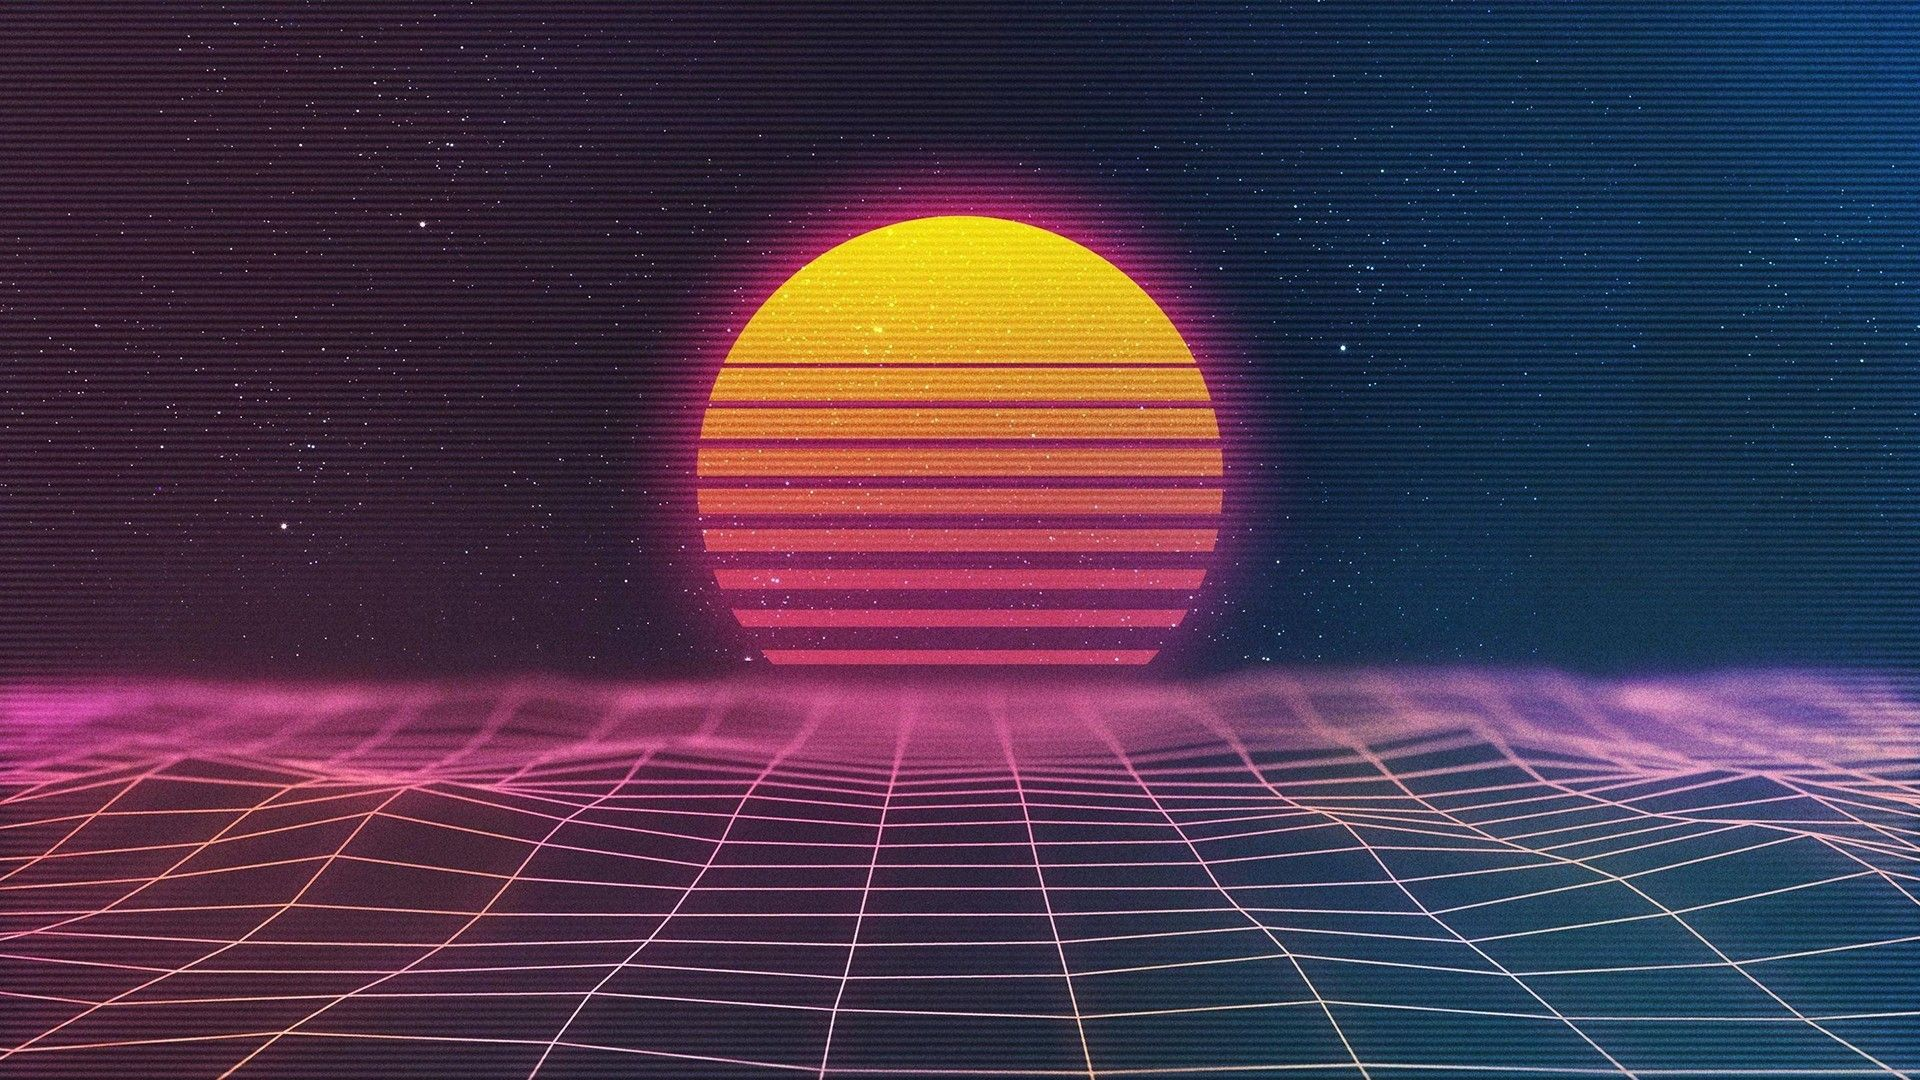 80s Retro Sci Fi Wallpapers Top Free 80s Retro Sci Fi